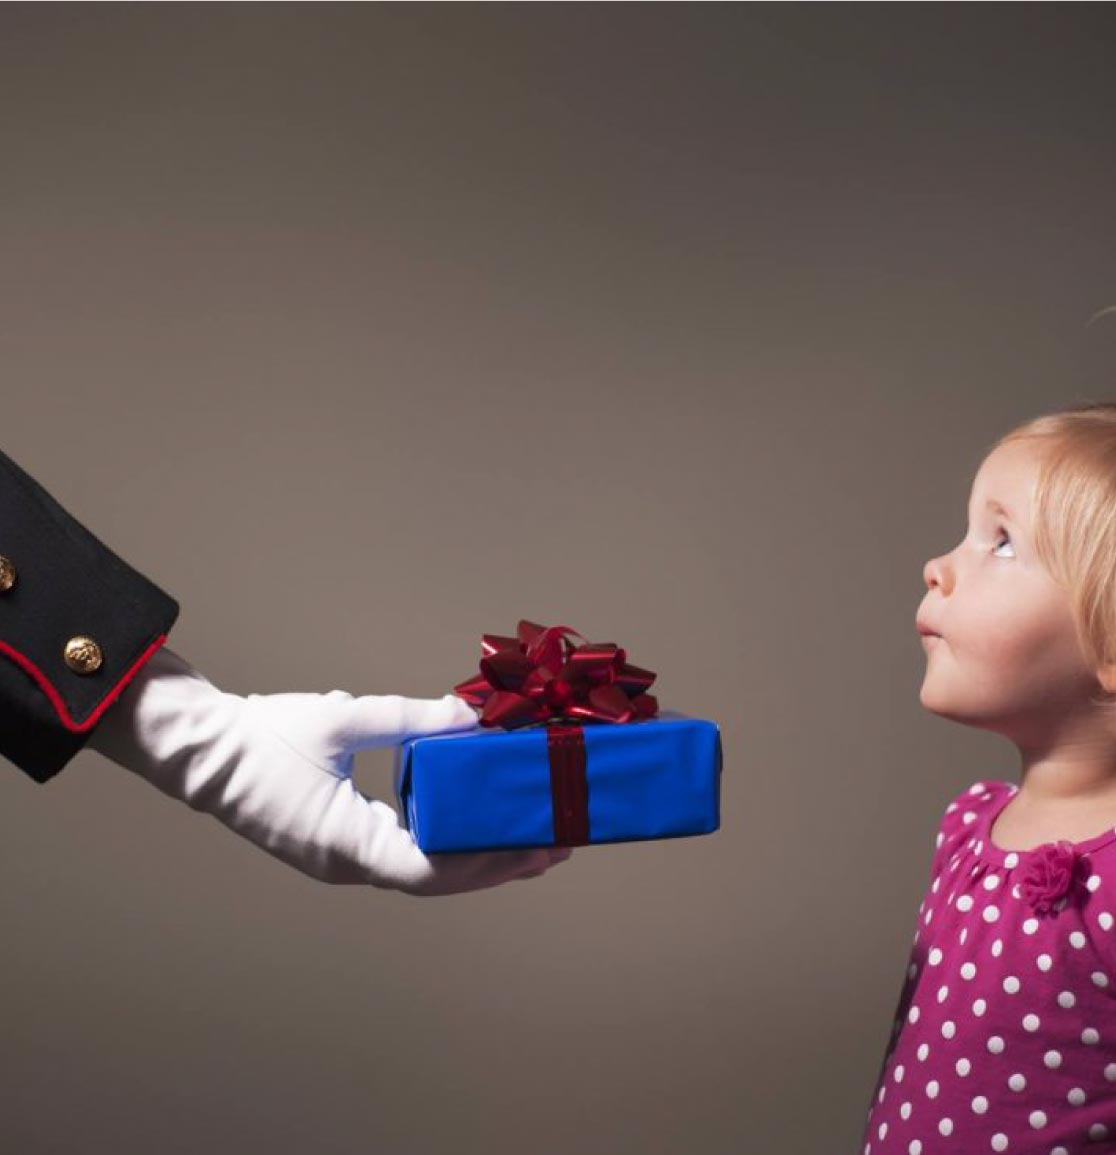 White-gloved hand beloning to a US Marine handing a gift to a little girl looking up at him